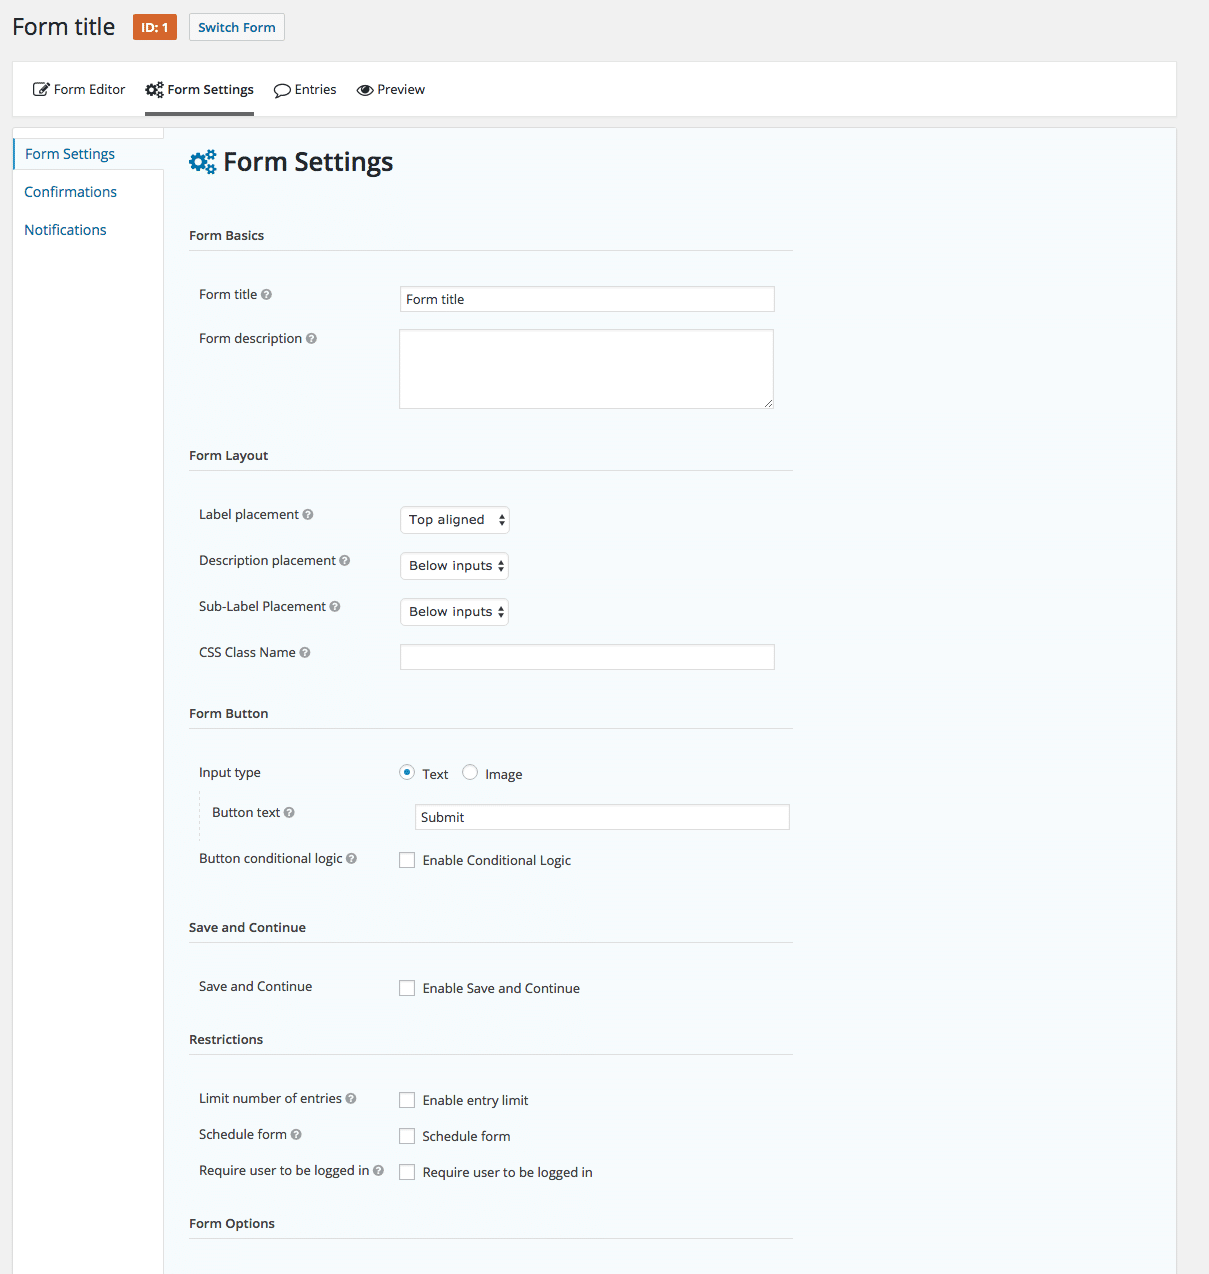 Forms Settings Overview